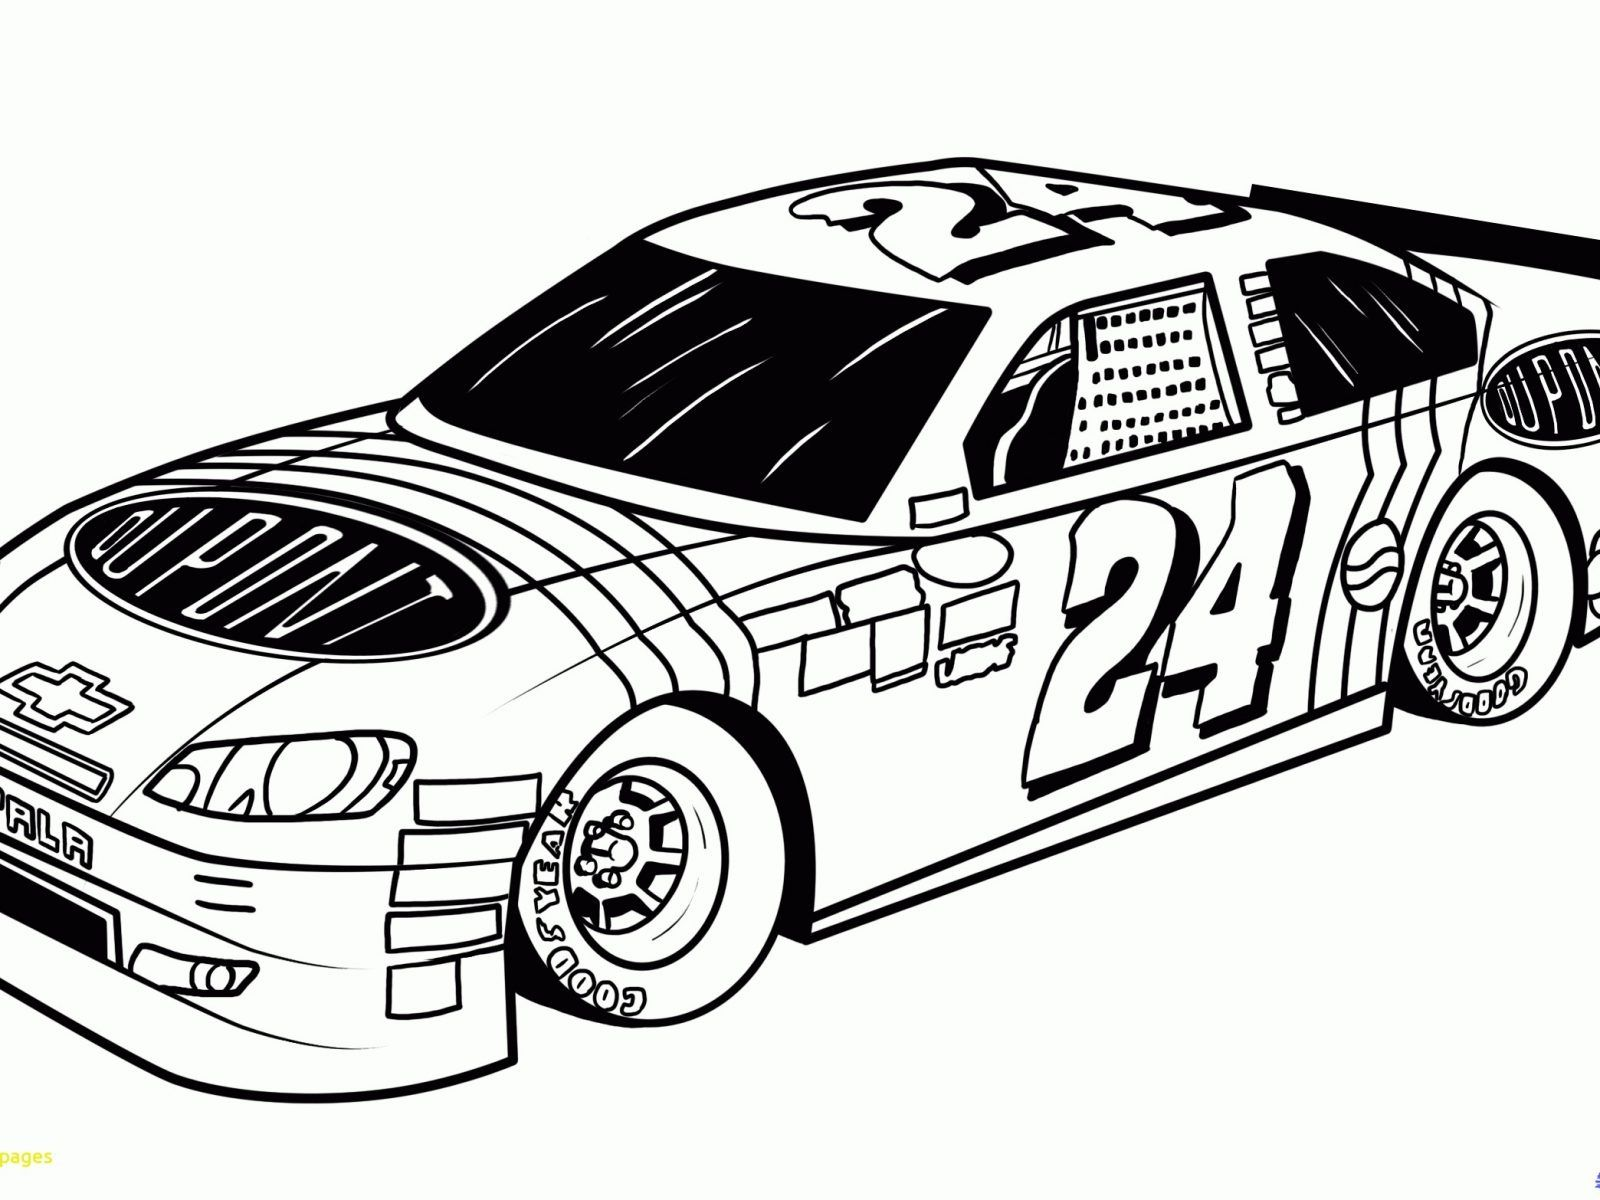 Cool Race Car Coloring Pages Free Coloring Sheets Cars Coloring Pages Race Car Coloring Pages Sports Cars Luxury